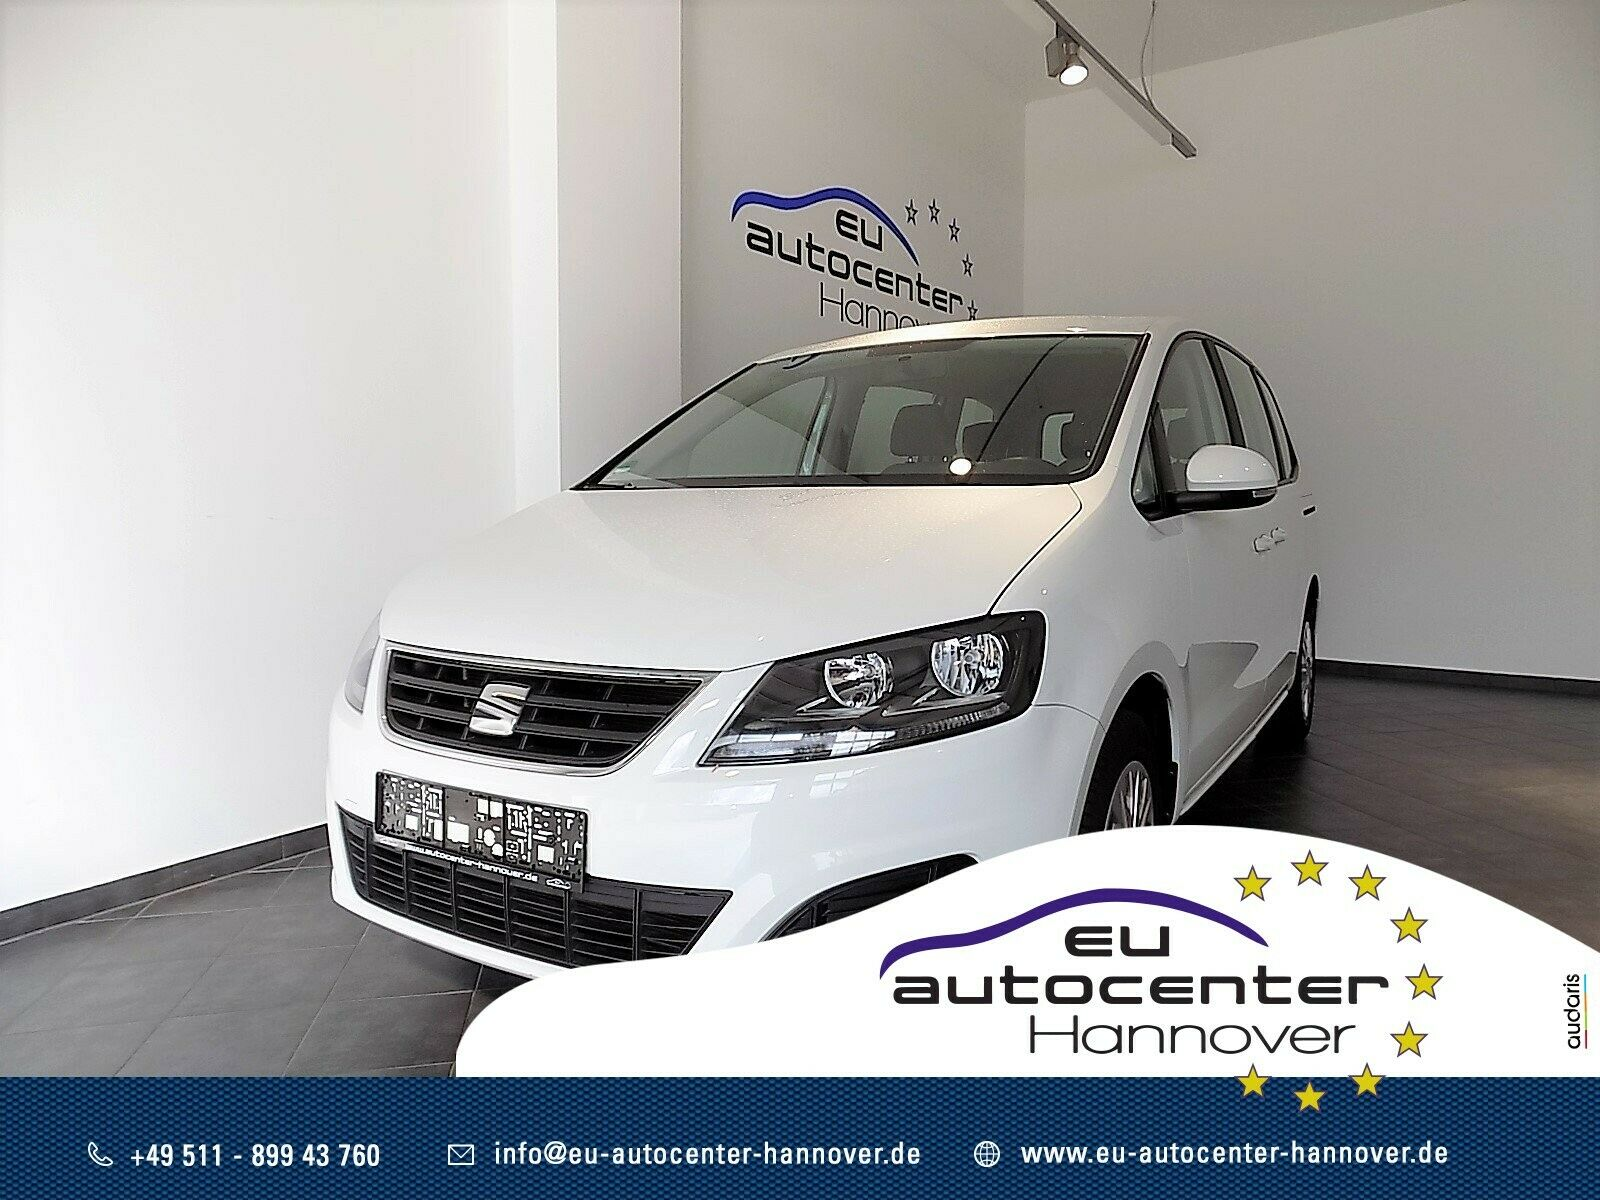 SEAT Alhambra 1.4 TSI 150 PS Klima Radio/CD/AUX